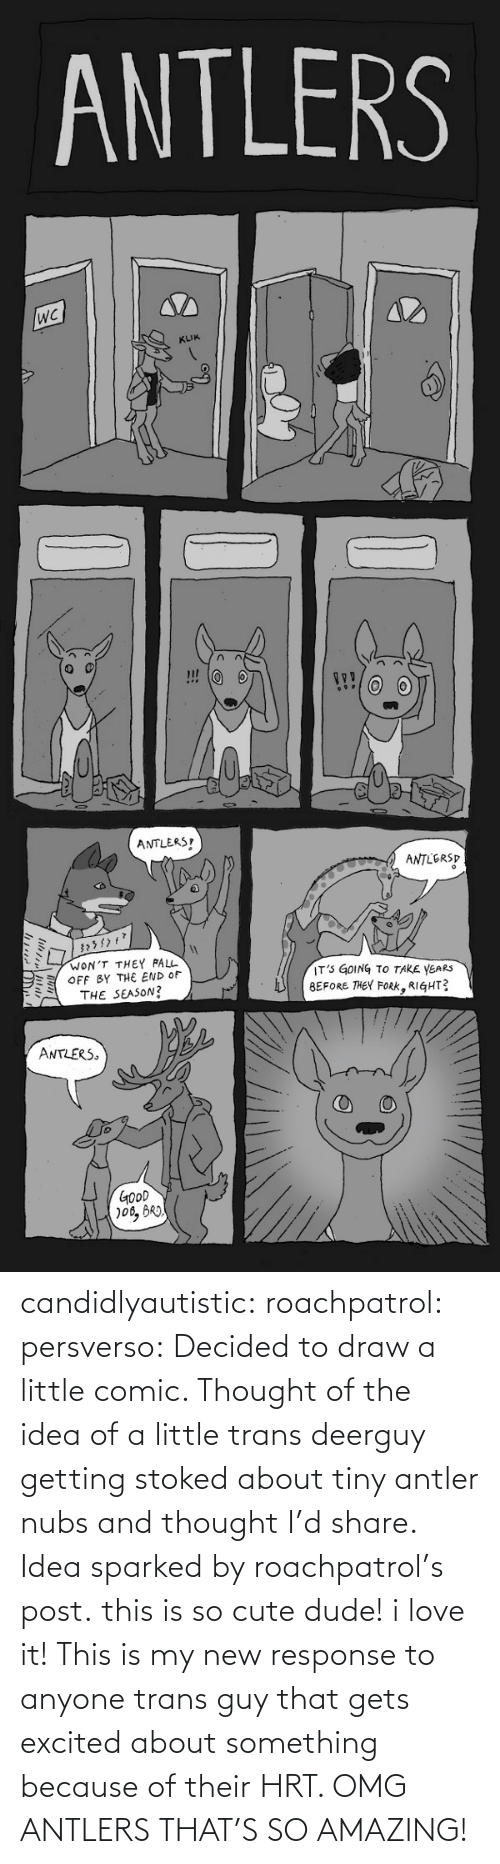 How Many: ANTLERS  KLIK  ANTLERS  ANTLERSP  WON'T THEY FALL  OFF BY THE END OF  THE SEASON?  IT' GOING TO TAKE YEARS  BEFORE THEY FoRK, RIGHT?  ミ  ANTLERS  GOoD candidlyautistic: roachpatrol:  persverso:  Decided to draw a little comic. Thought of the idea of a little trans deerguy getting stoked about tiny antler nubs and thought I'd share. Idea sparked by roachpatrol's post.  this is so cute dude! i love it!  This is my new response to anyone trans guy that gets excited about something because of their HRT. OMG ANTLERS THAT'S SO AMAZING!